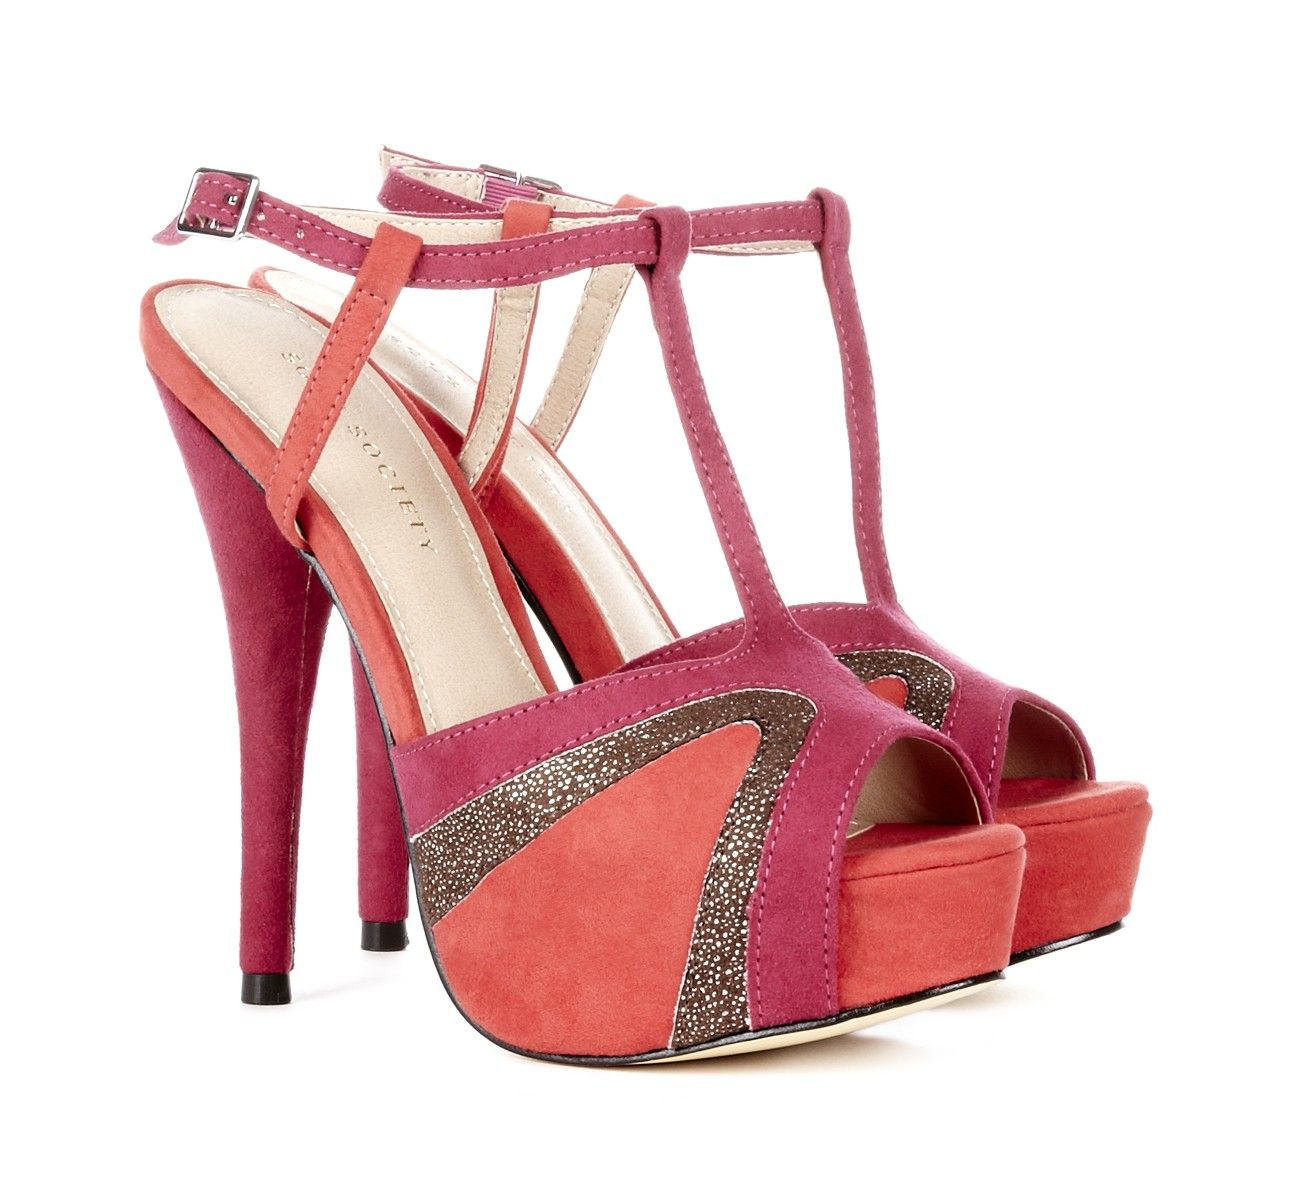 These Are Adorable Sole Society Shoe Lover Me Too Shoes Shoes